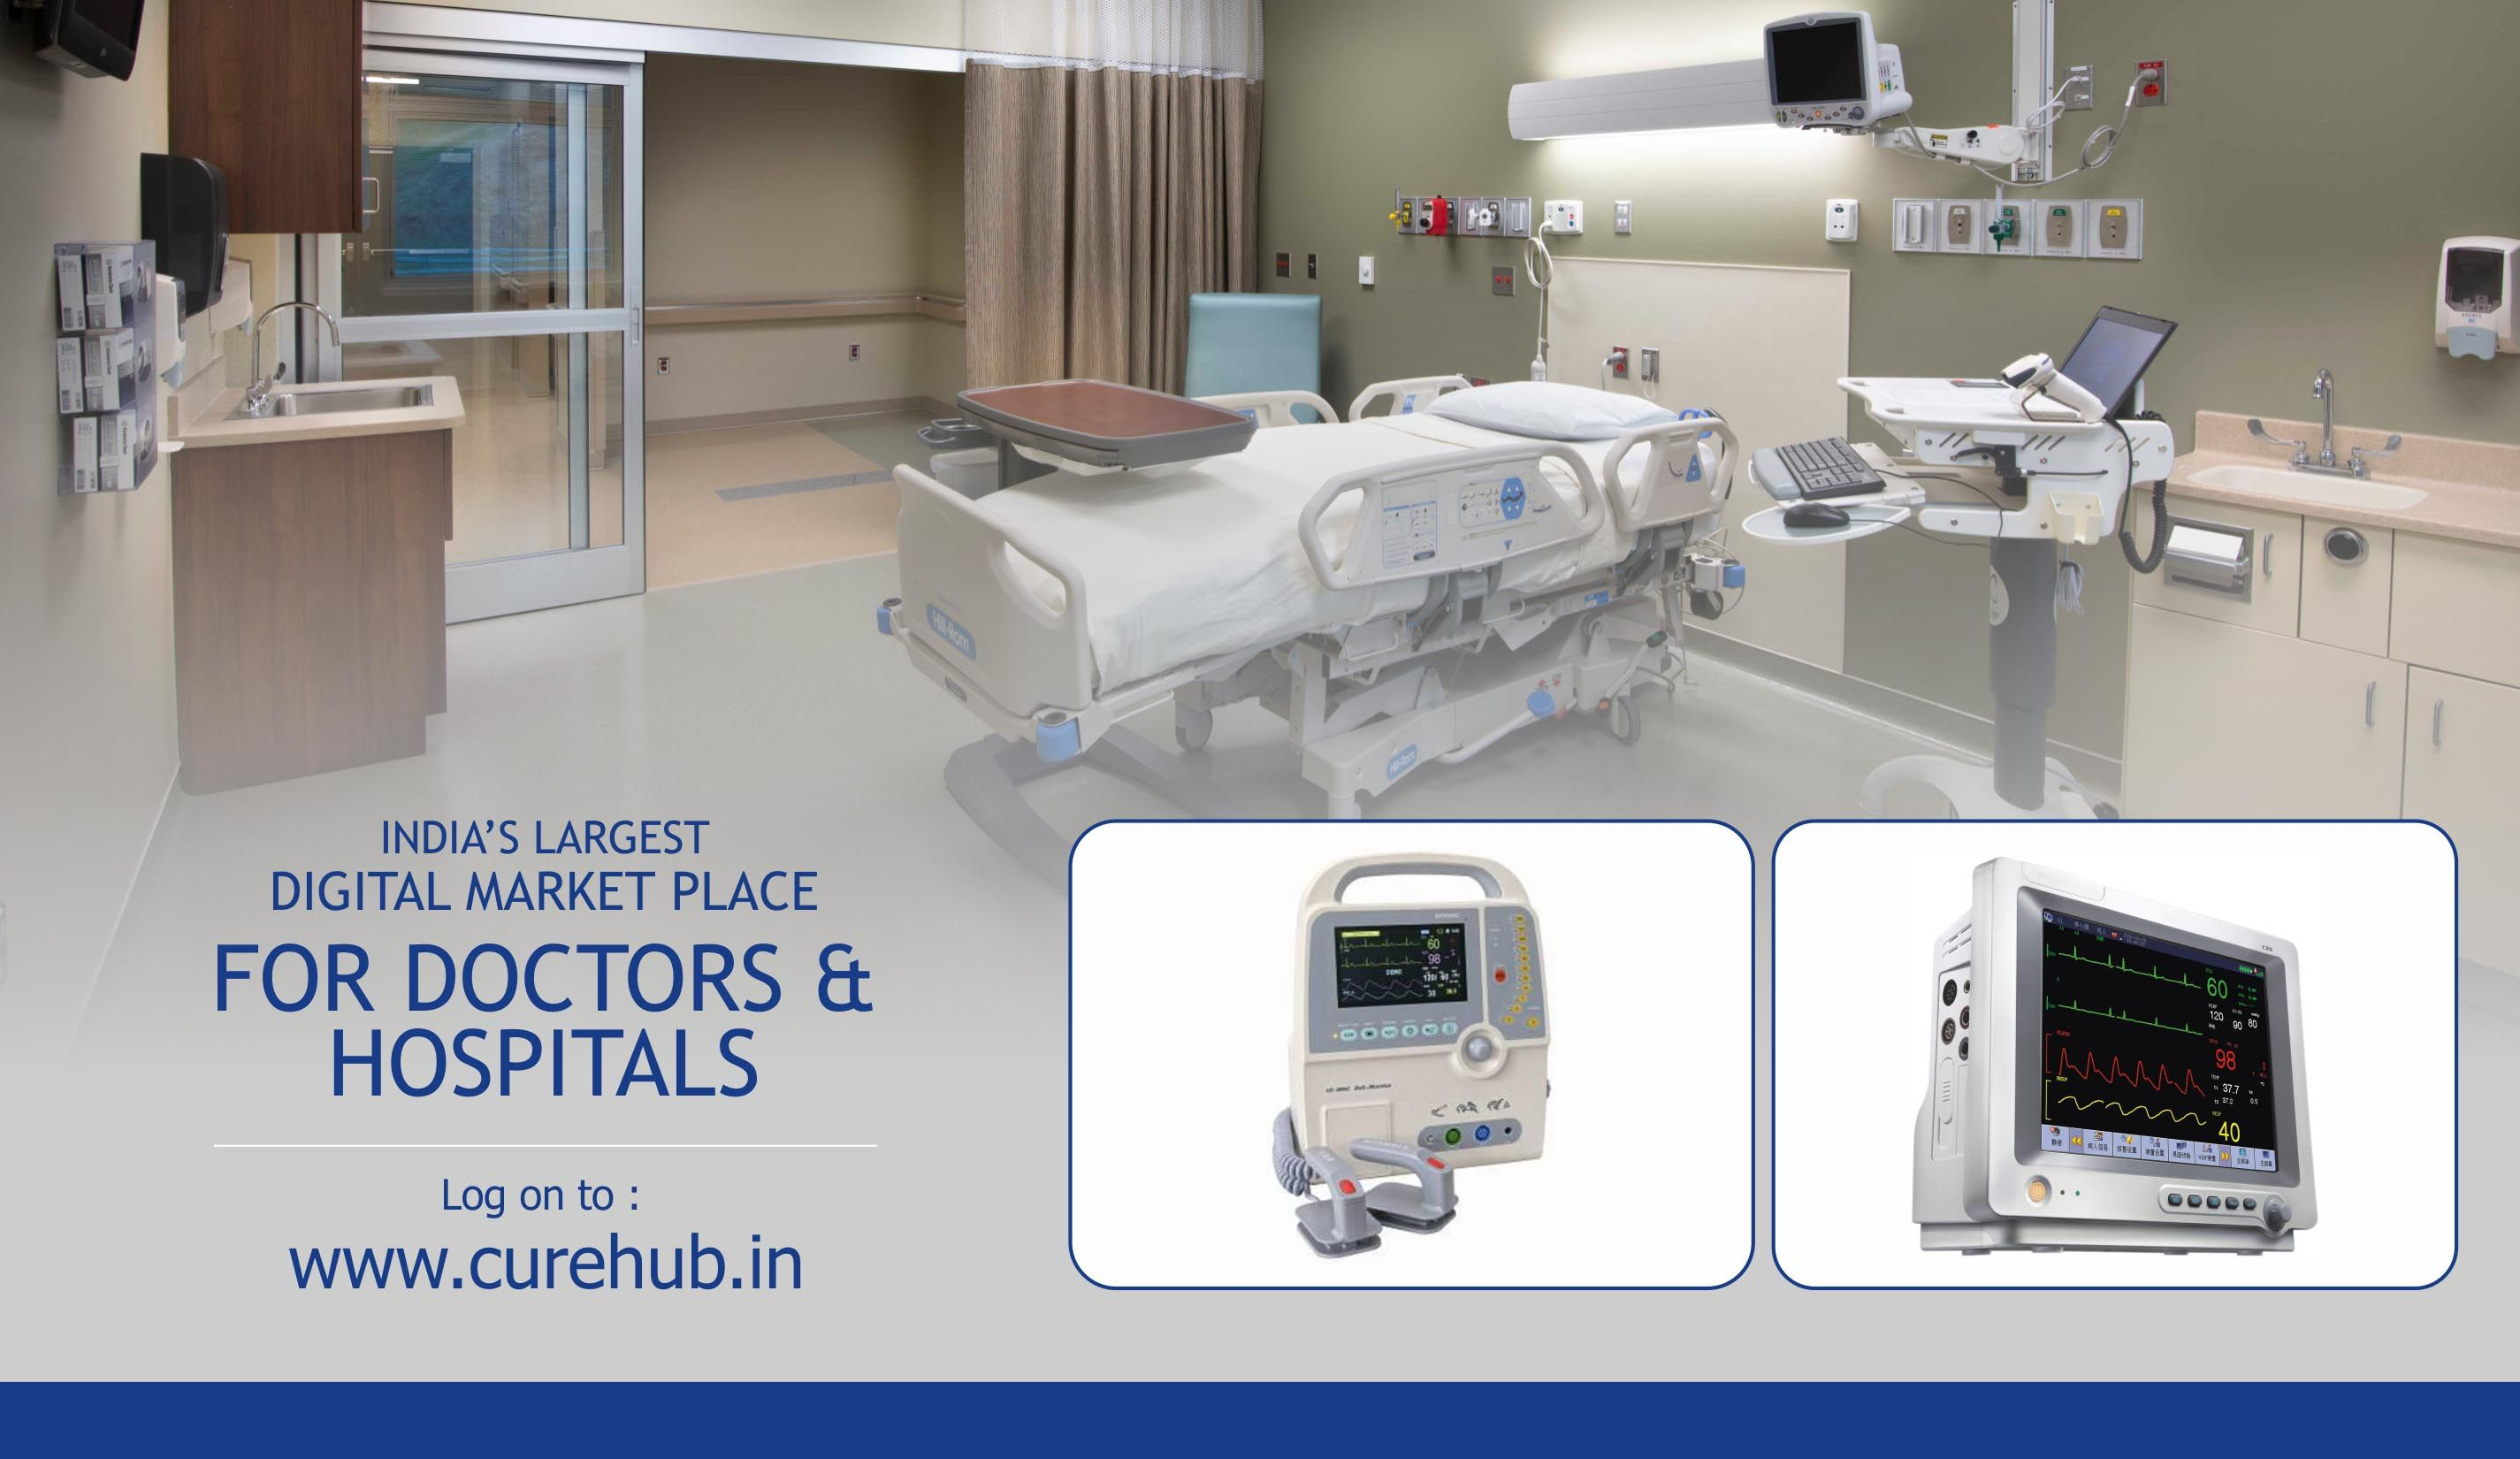 Coming Soon The Newest Best Medical Products And Equipment Www Curehub In Bringing Loving Care To Health Care Health Care Storage Home Decor